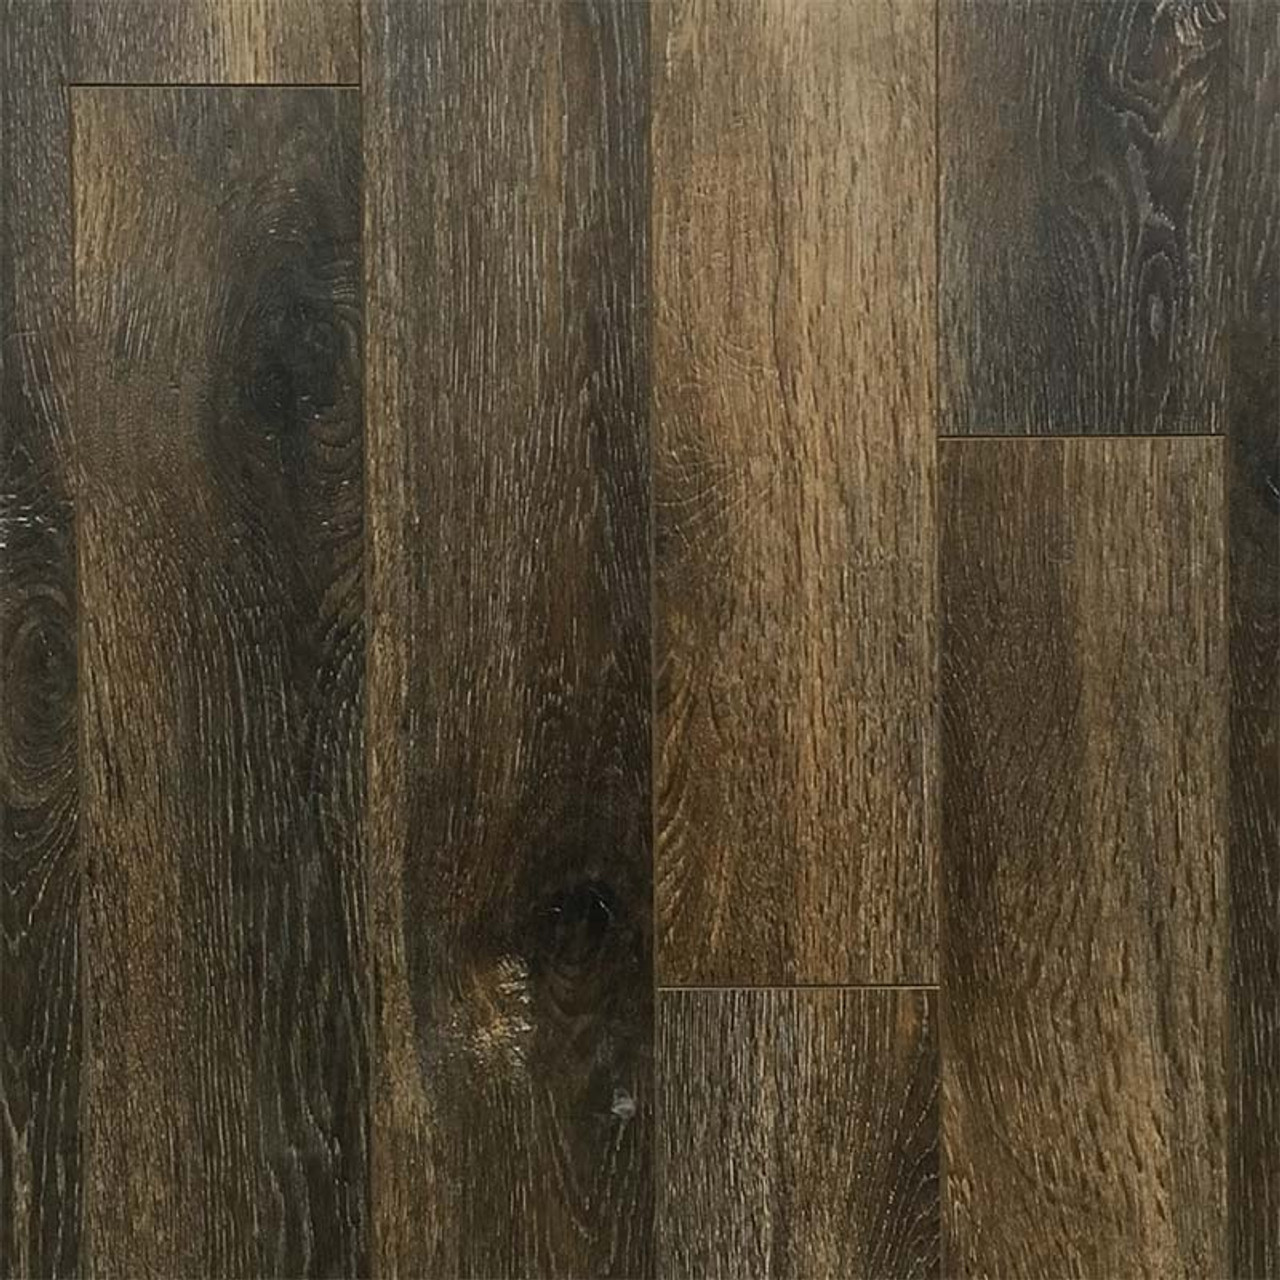 12MM Phoenix Laminate Flooring | Attached Underpad | Studio + | 16.48 Sq.Ft. Per Box | Sold by the Box